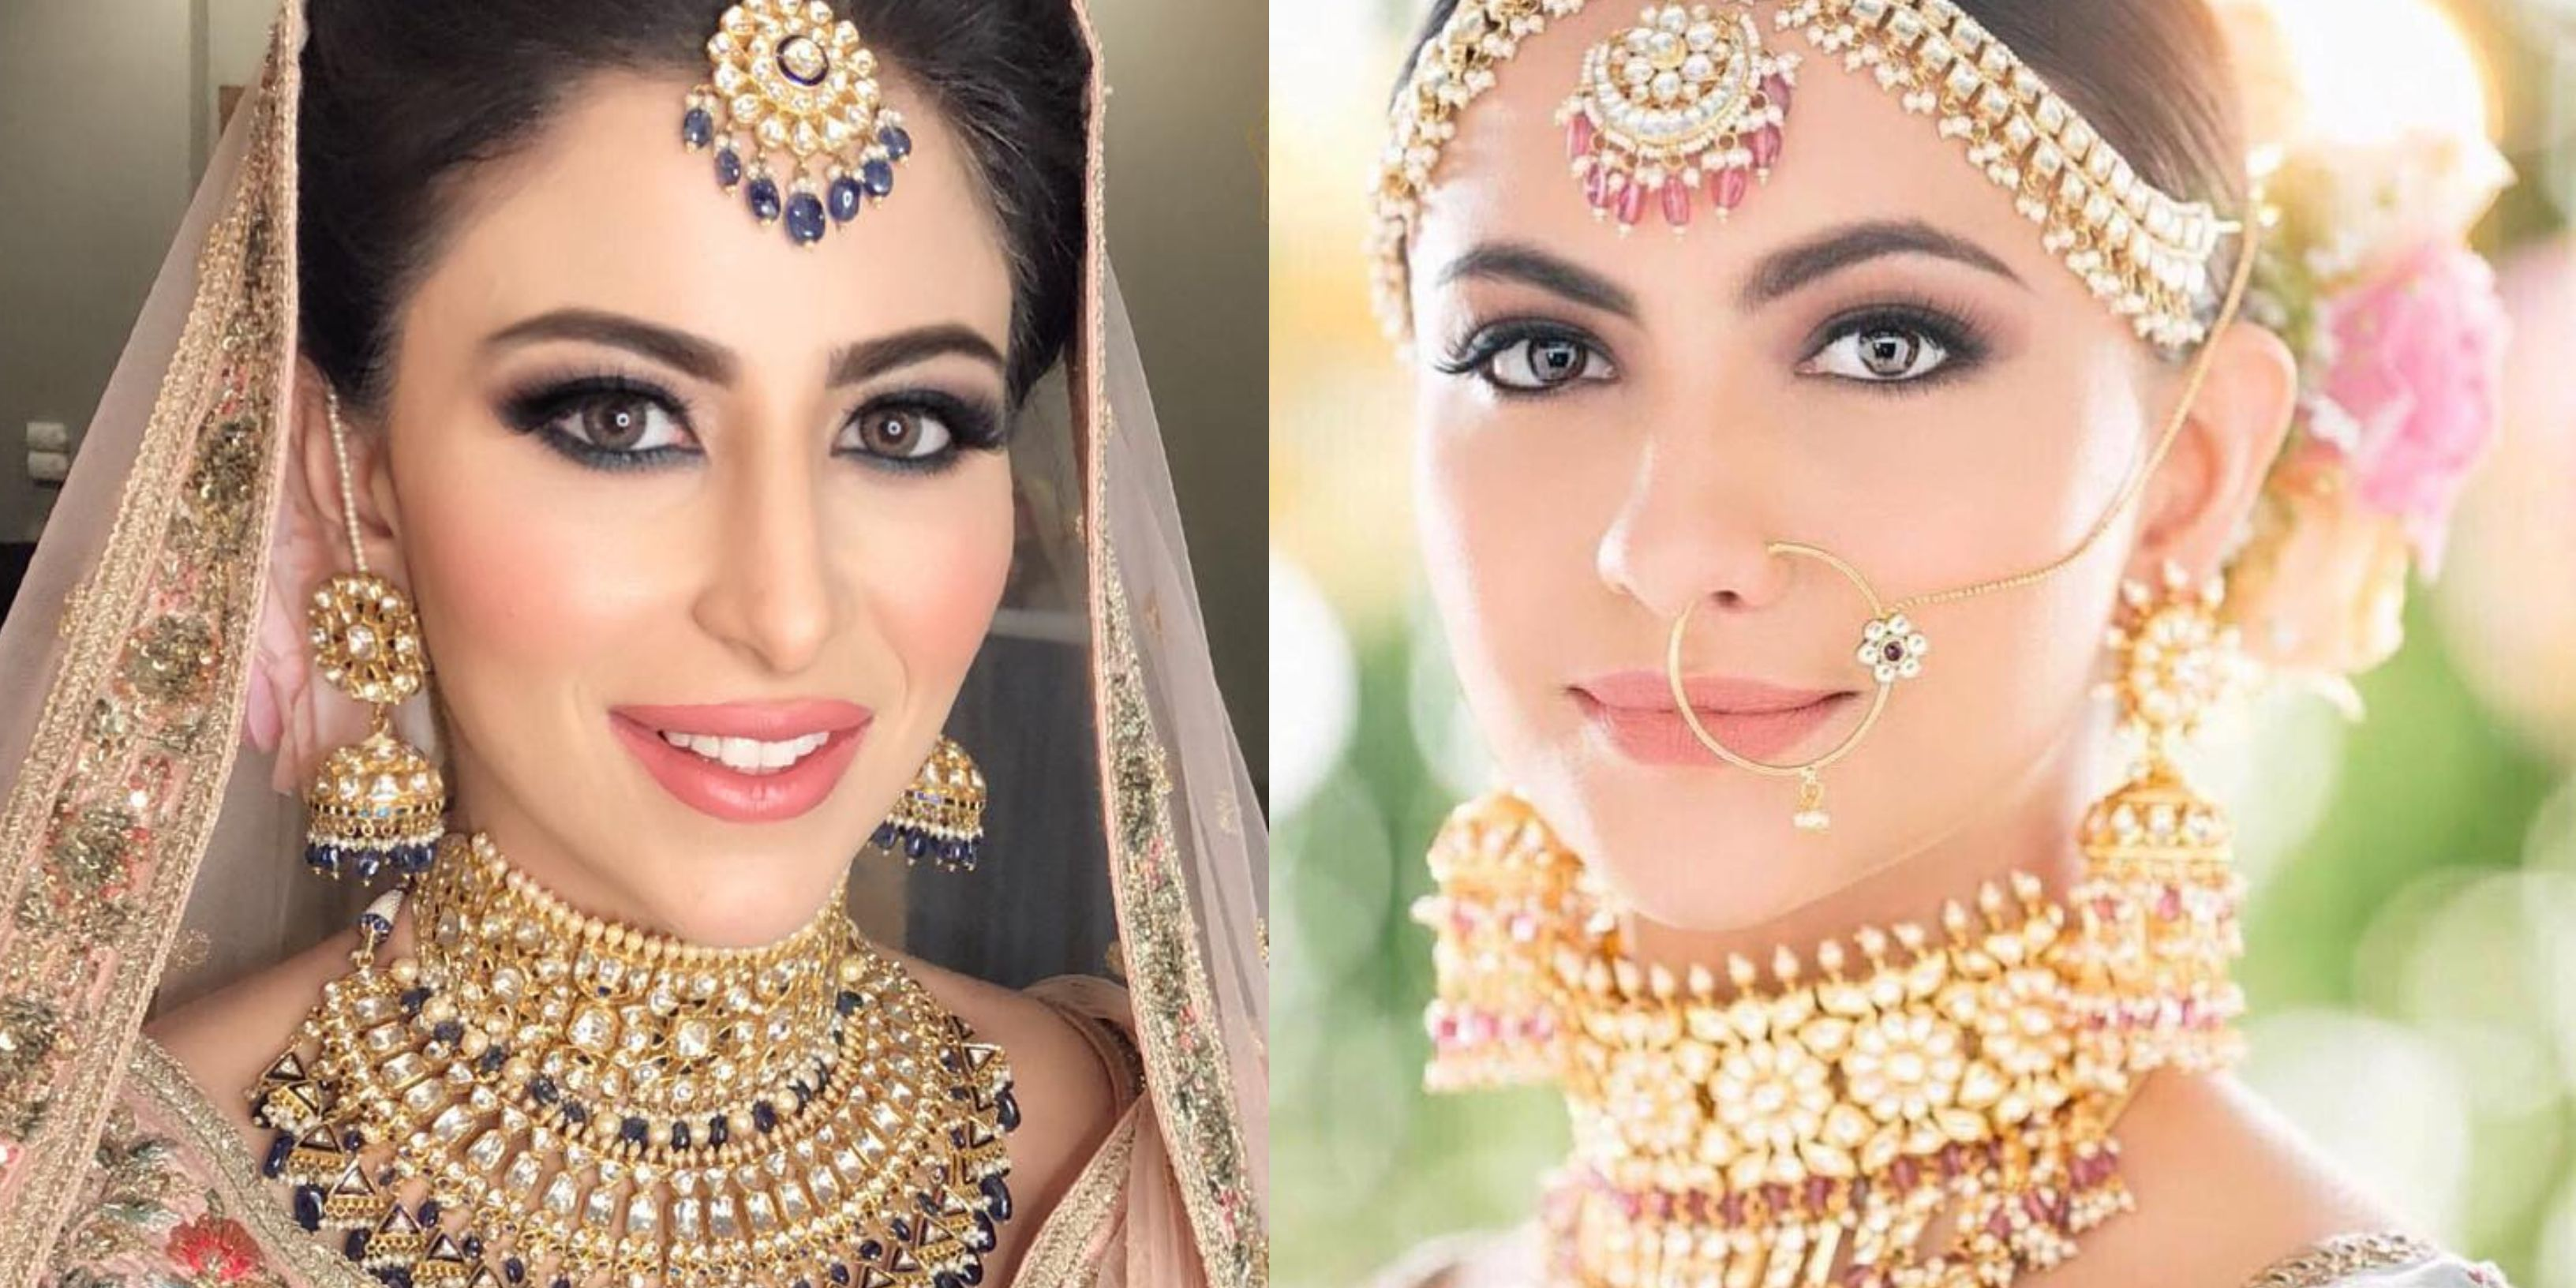 Bridal makeup heavy makeup for indian brides in 2020